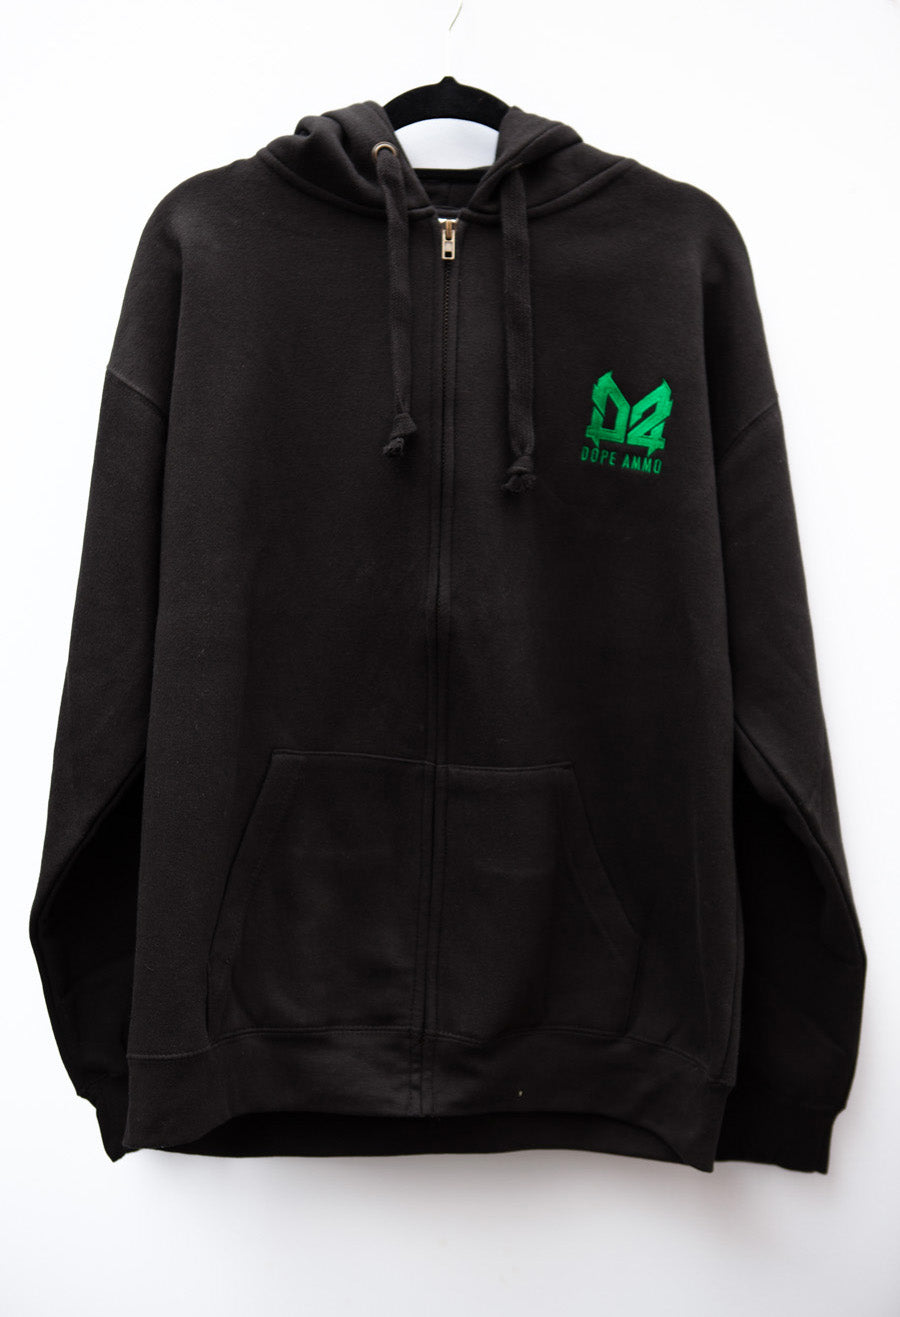 Dope Ammo Zip-up Hoodie (Black)